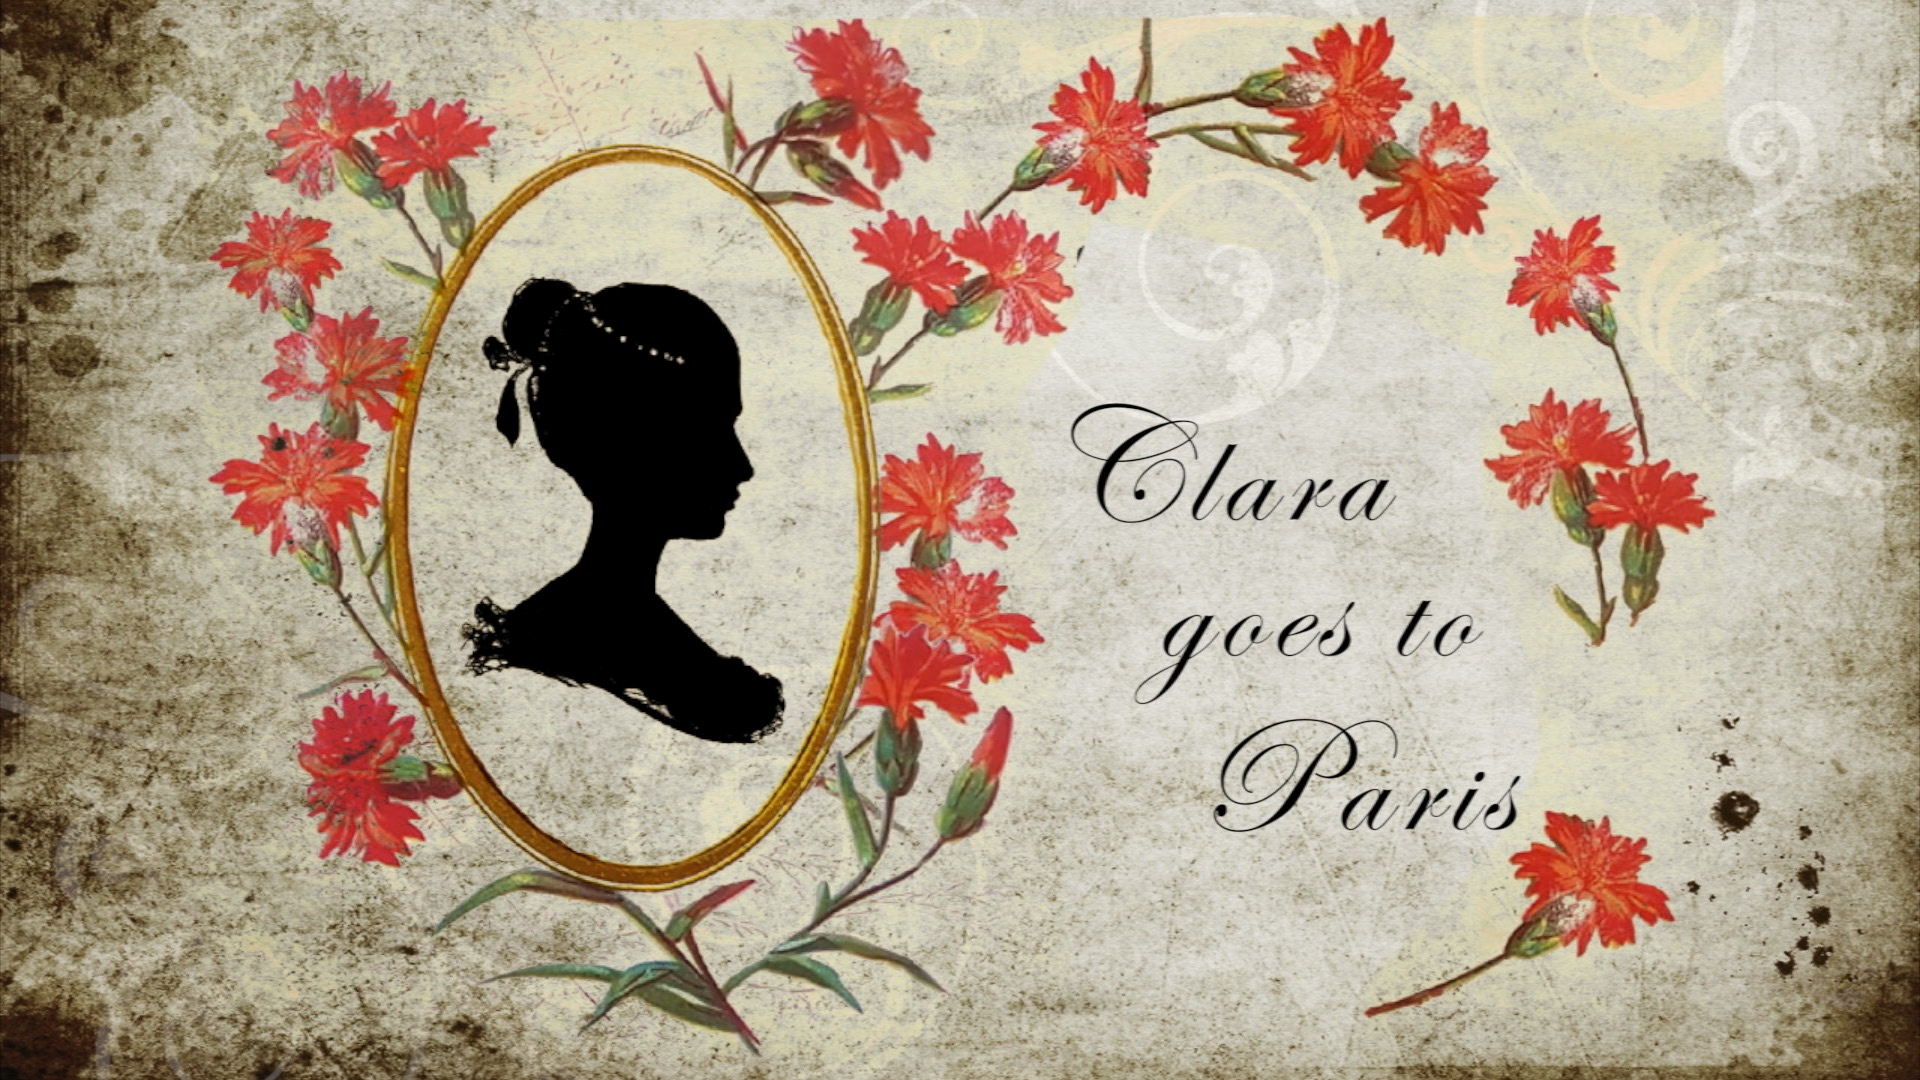 http://www.artsung.com/wp-content/uploads/2020/09/Clara-goes-to-Paris-image-1.jpg